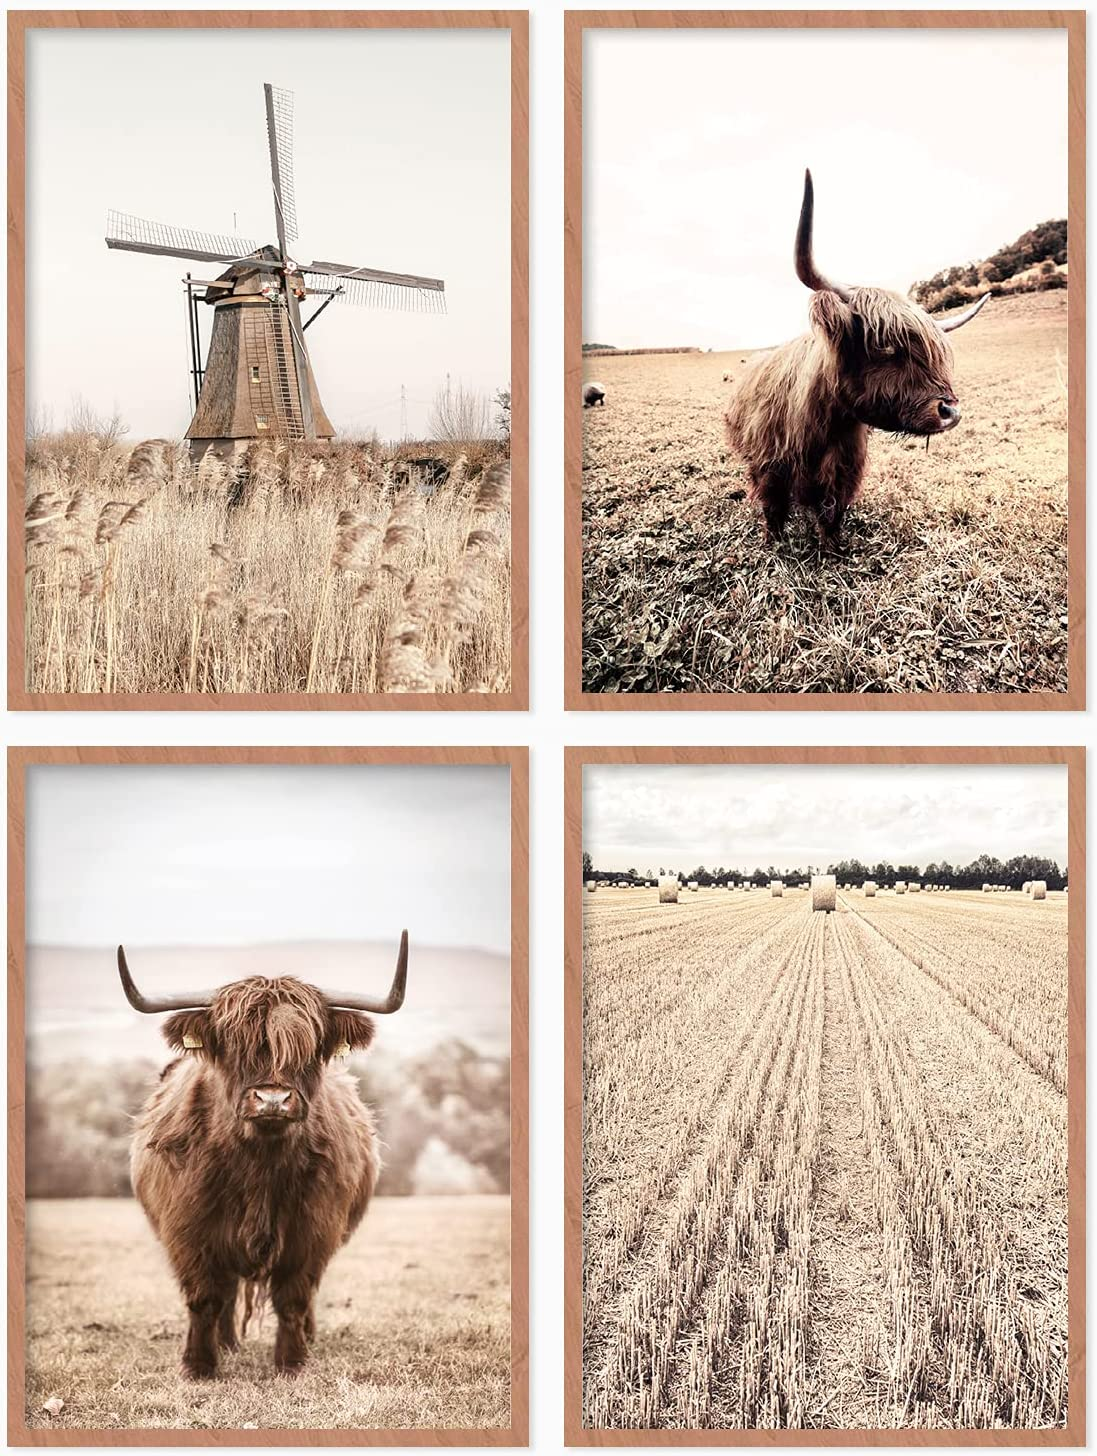 YUMKNOW Farmhouse Cow Wall Decor - Unframed Set of 4, 8x10, Bedroom Cottage Rustic Pictures Vintage Posters for Living Room Modern Country Highland Cow Art for Bathroom, Neutral Cow Decor Stuff Gifts